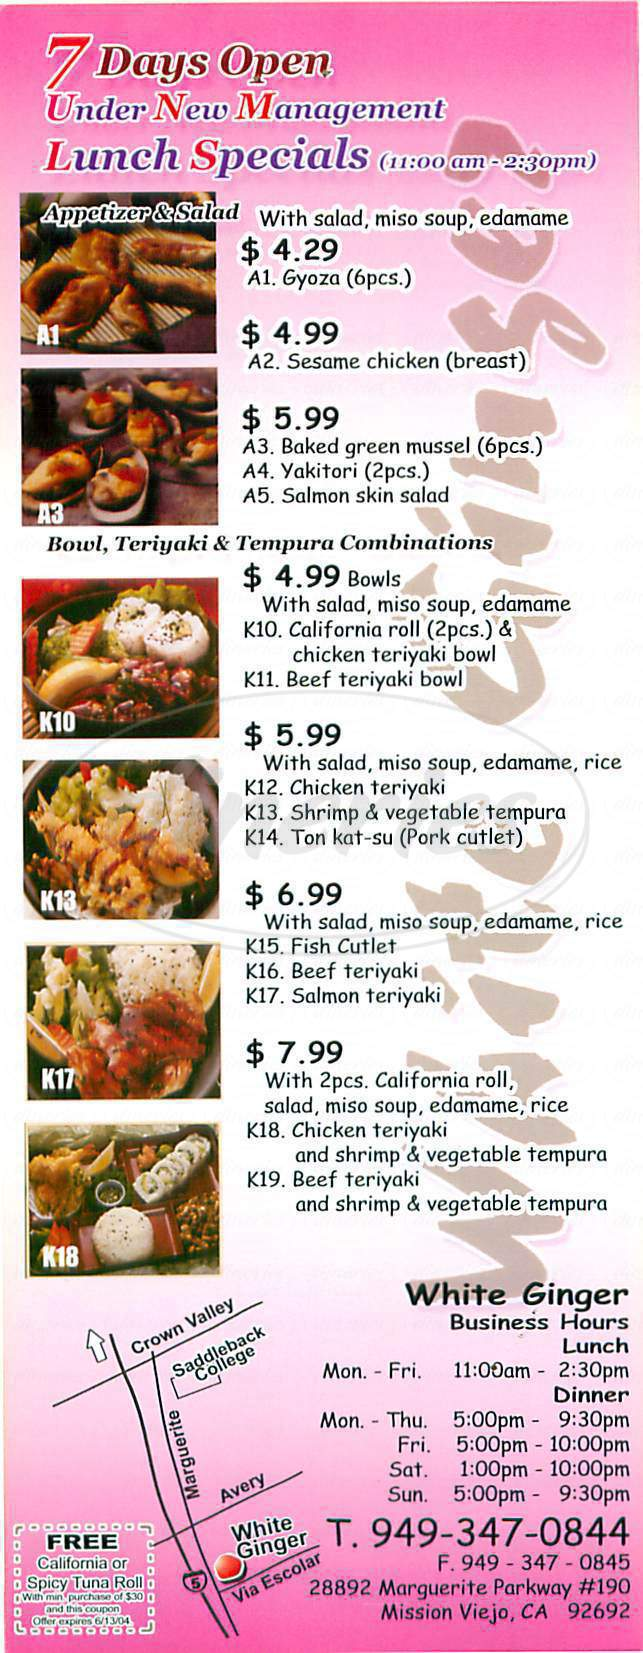 menu for White Ginger